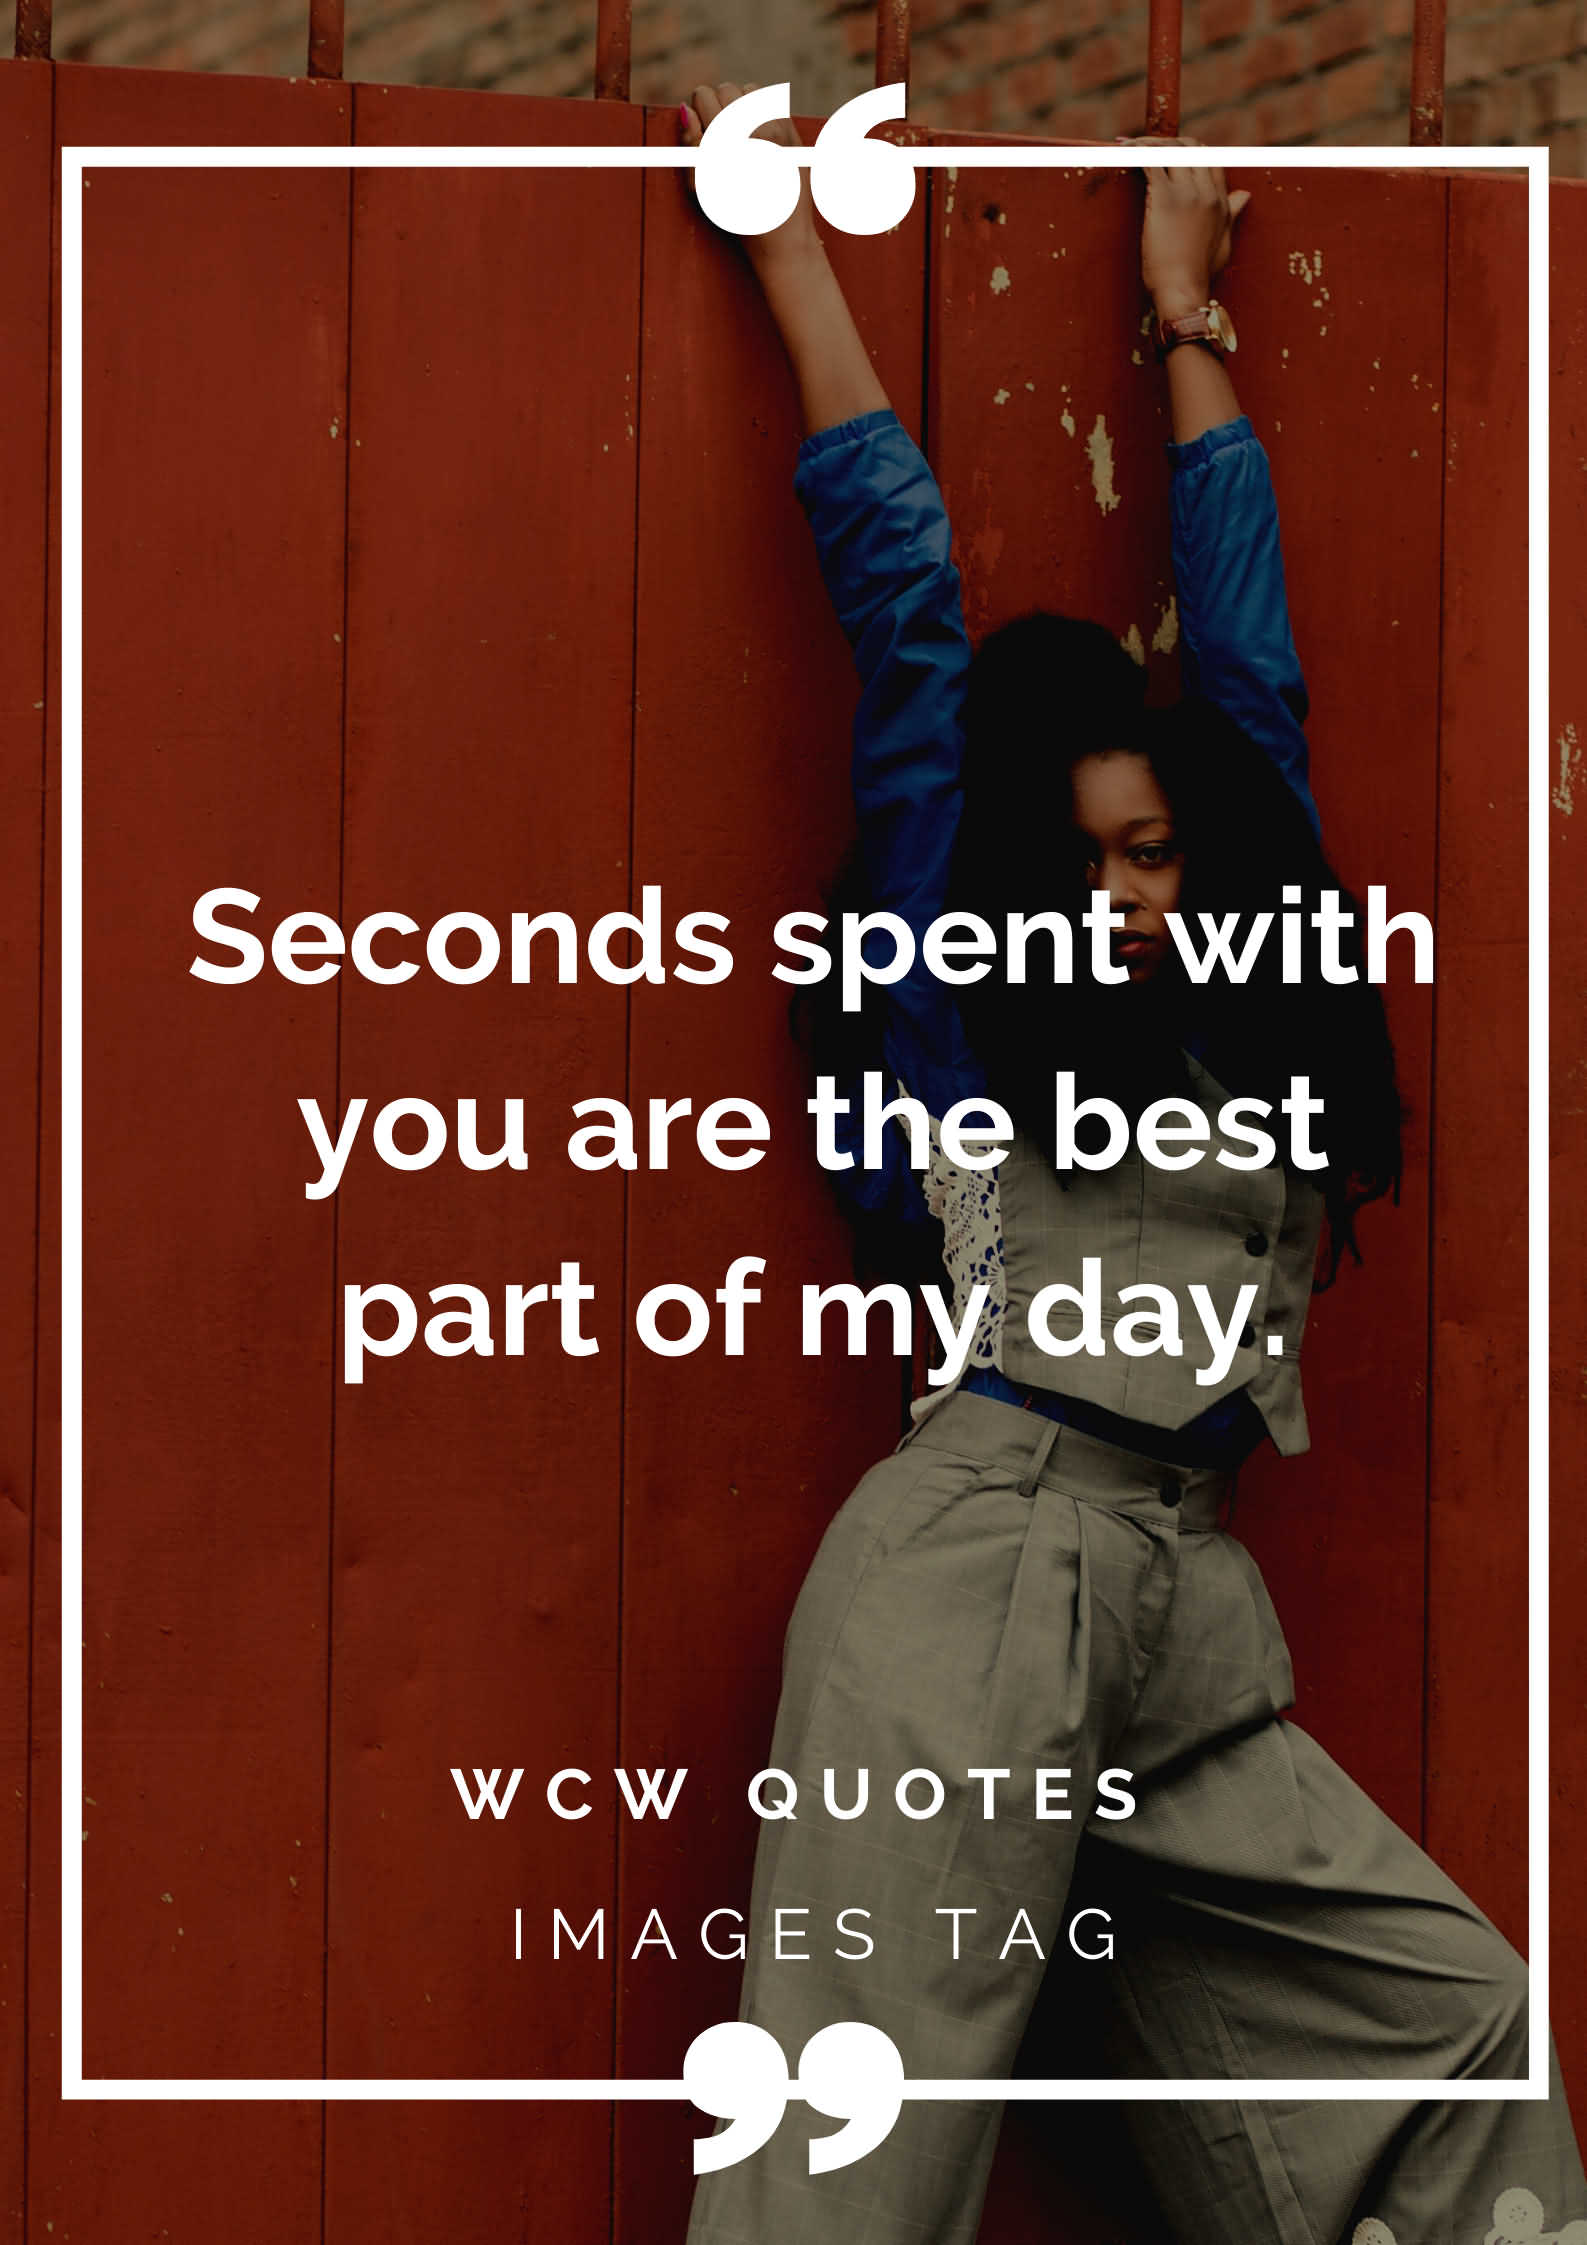 Seconds Spent With You Are The Best Part Of My Day. Wcw Quotes For Single Women